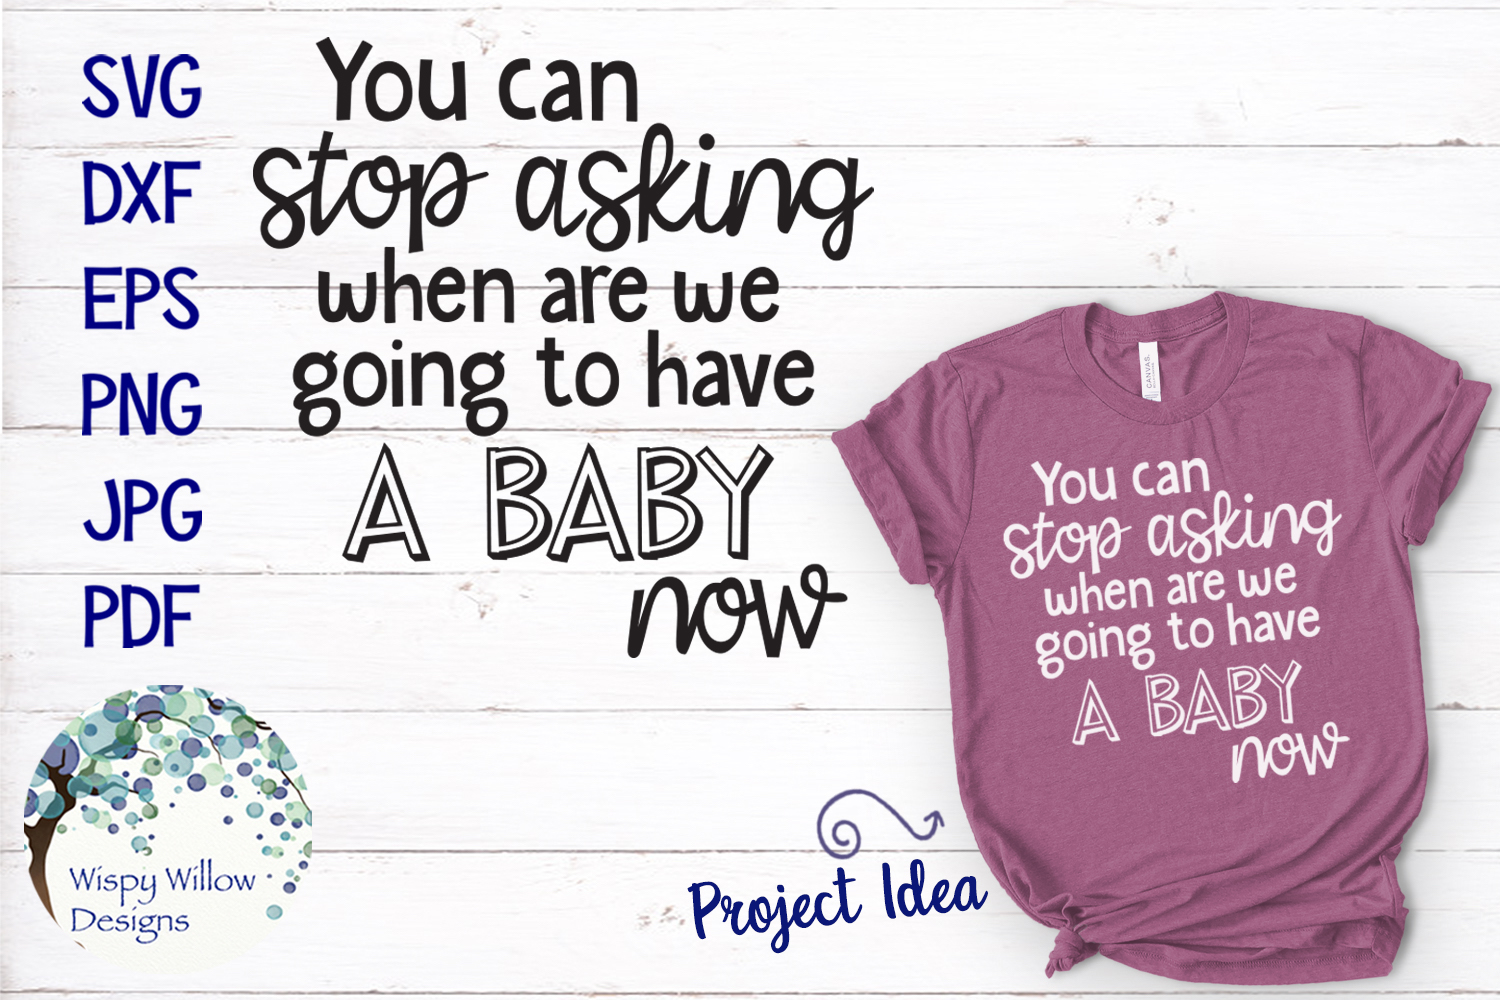 You Can Stop Asking When We Are Having A Baby Now SVG example image 1